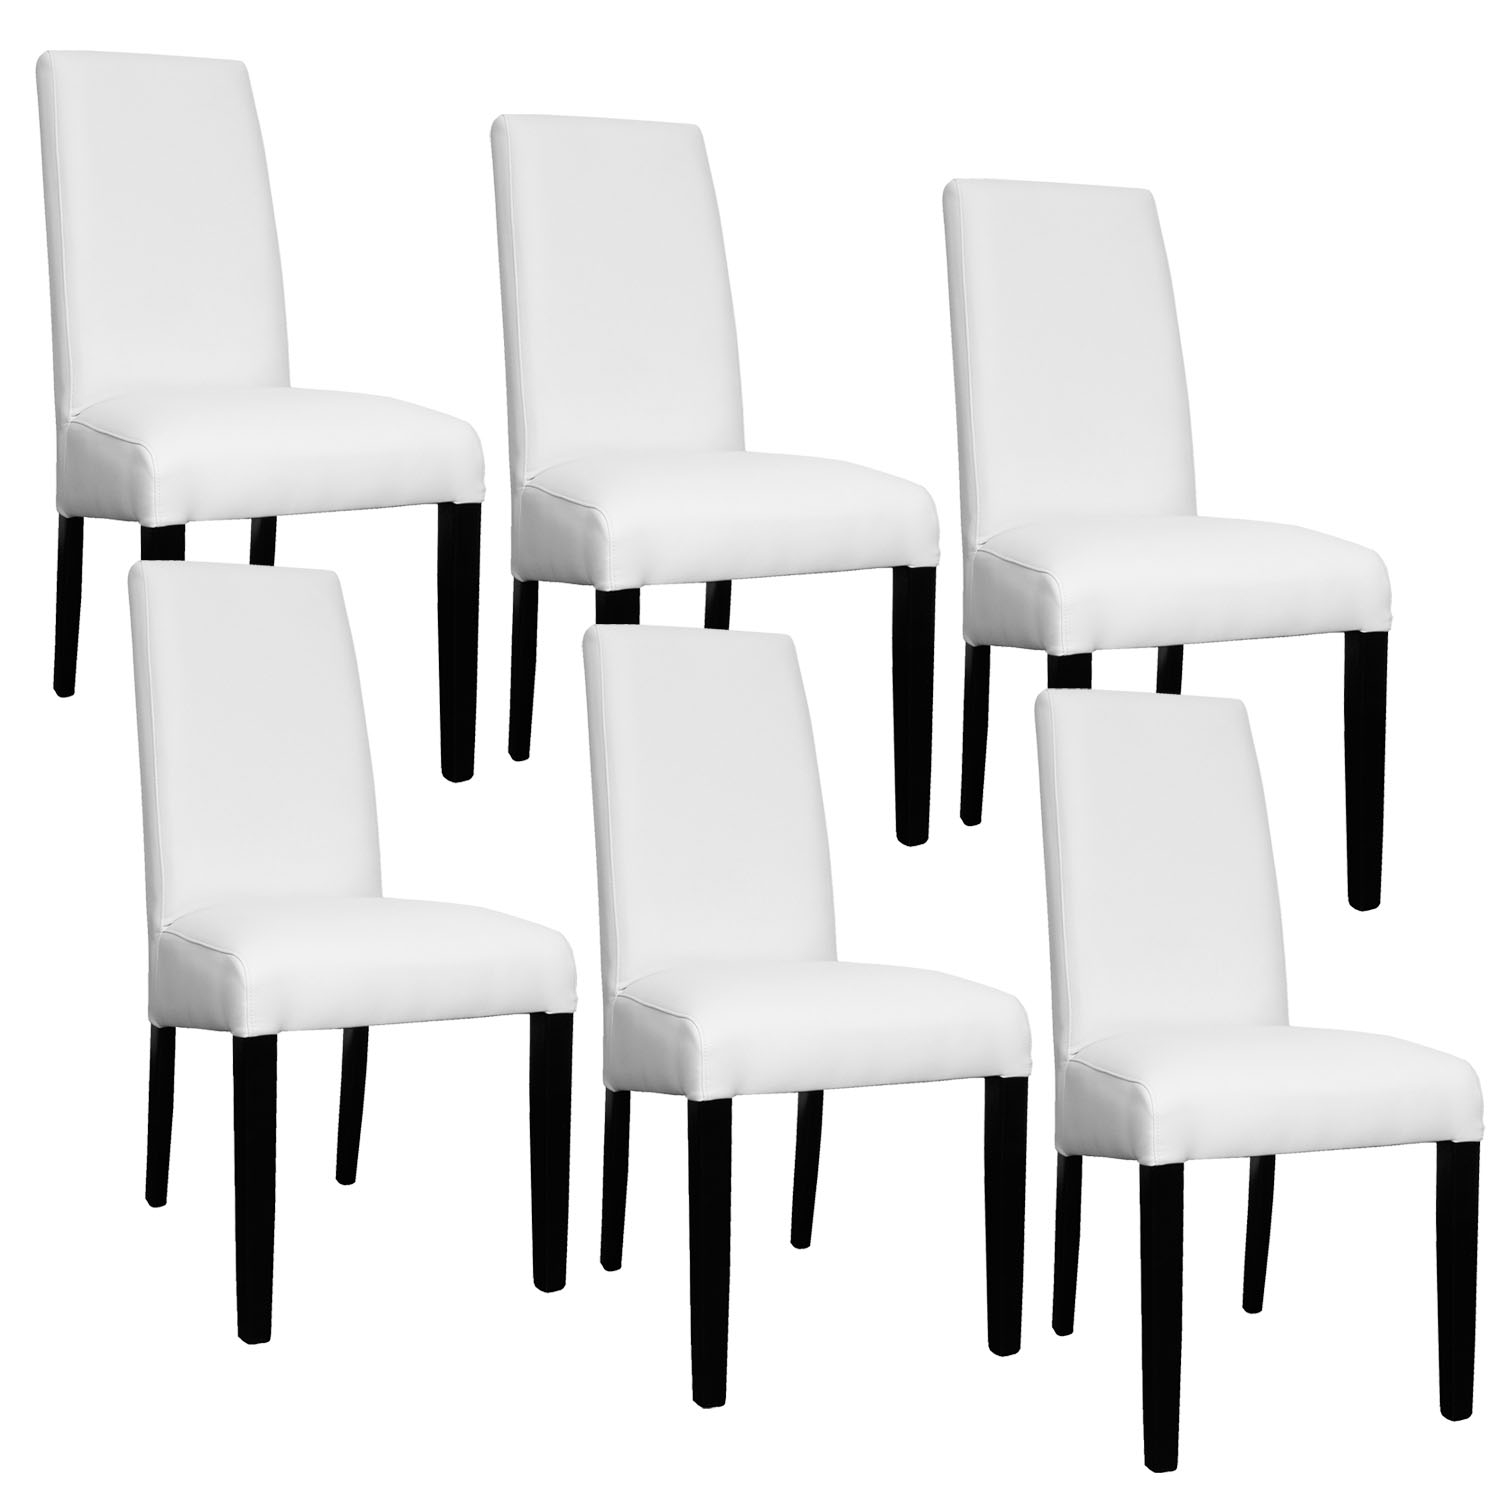 Deco in paris lot de 6 chaises blanche muka muka 6 blanc for Chaise blanche